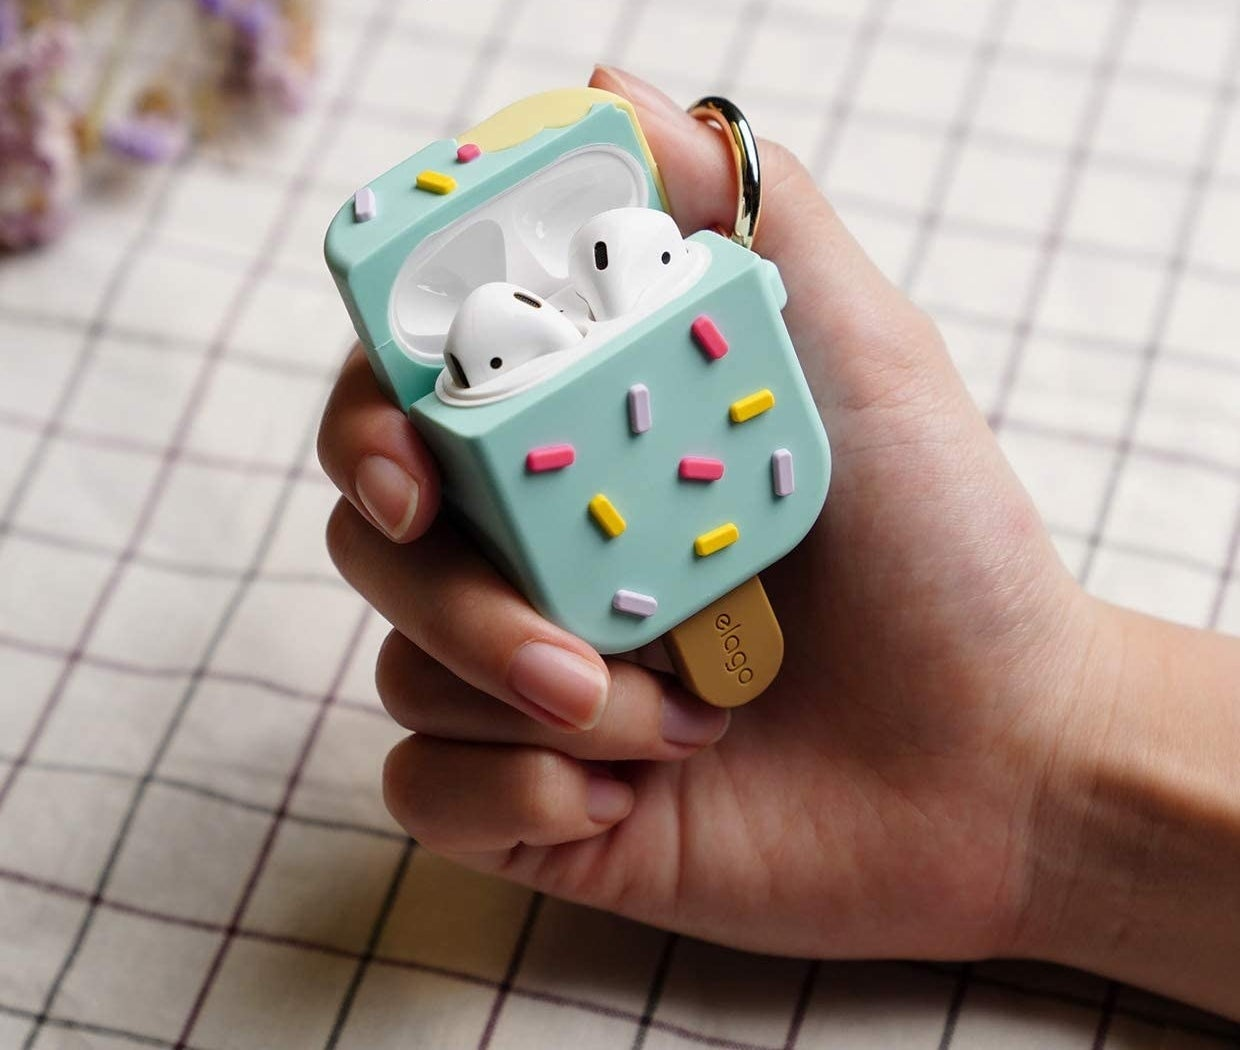 A person holding the icecream-shaped, silicone airpods case